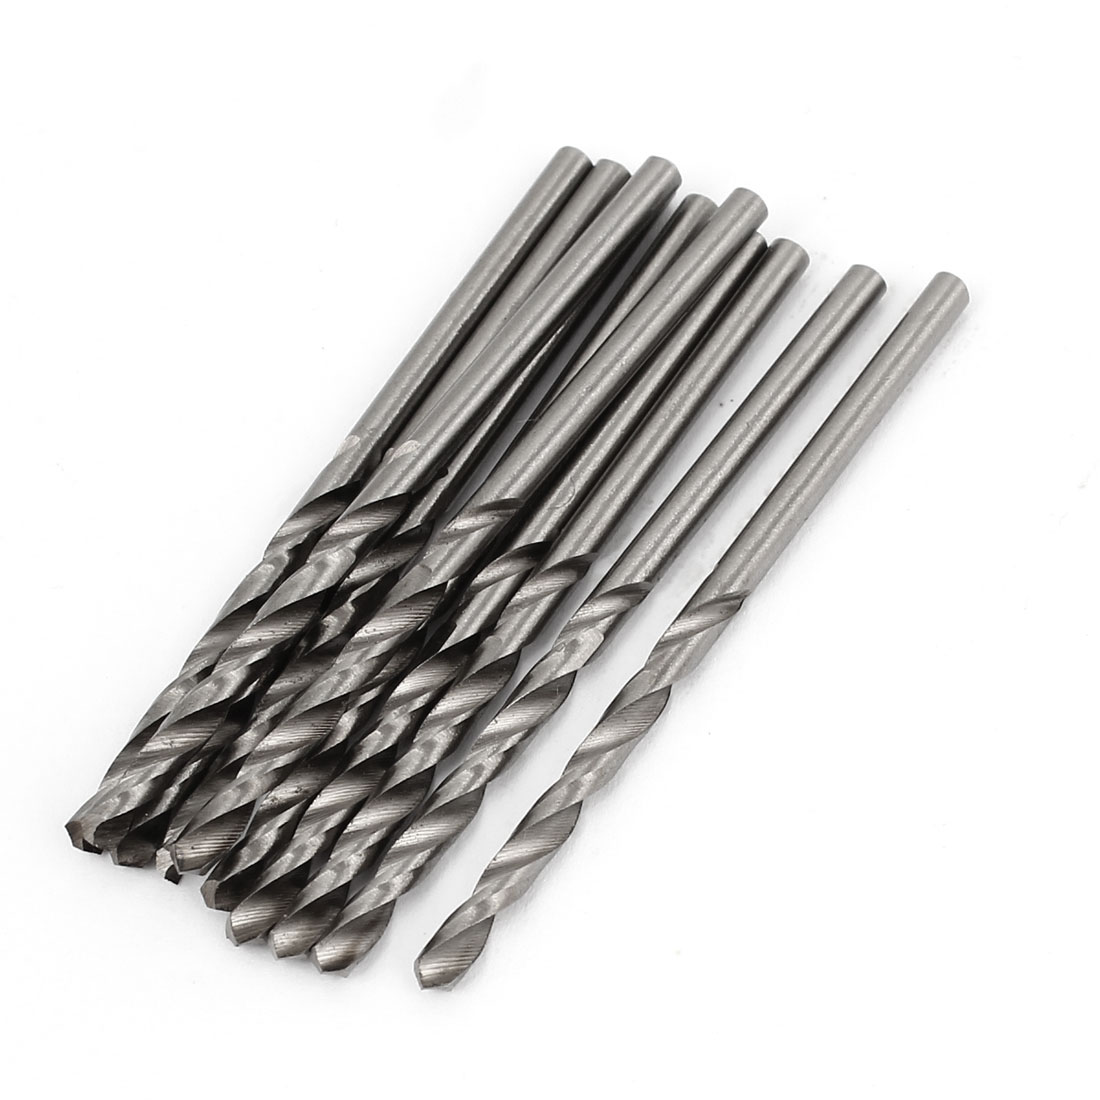 10 Pcs 32mm Length Flute 2.2mm Dia Metal Marble HSS Twist Drilling Drill Bit